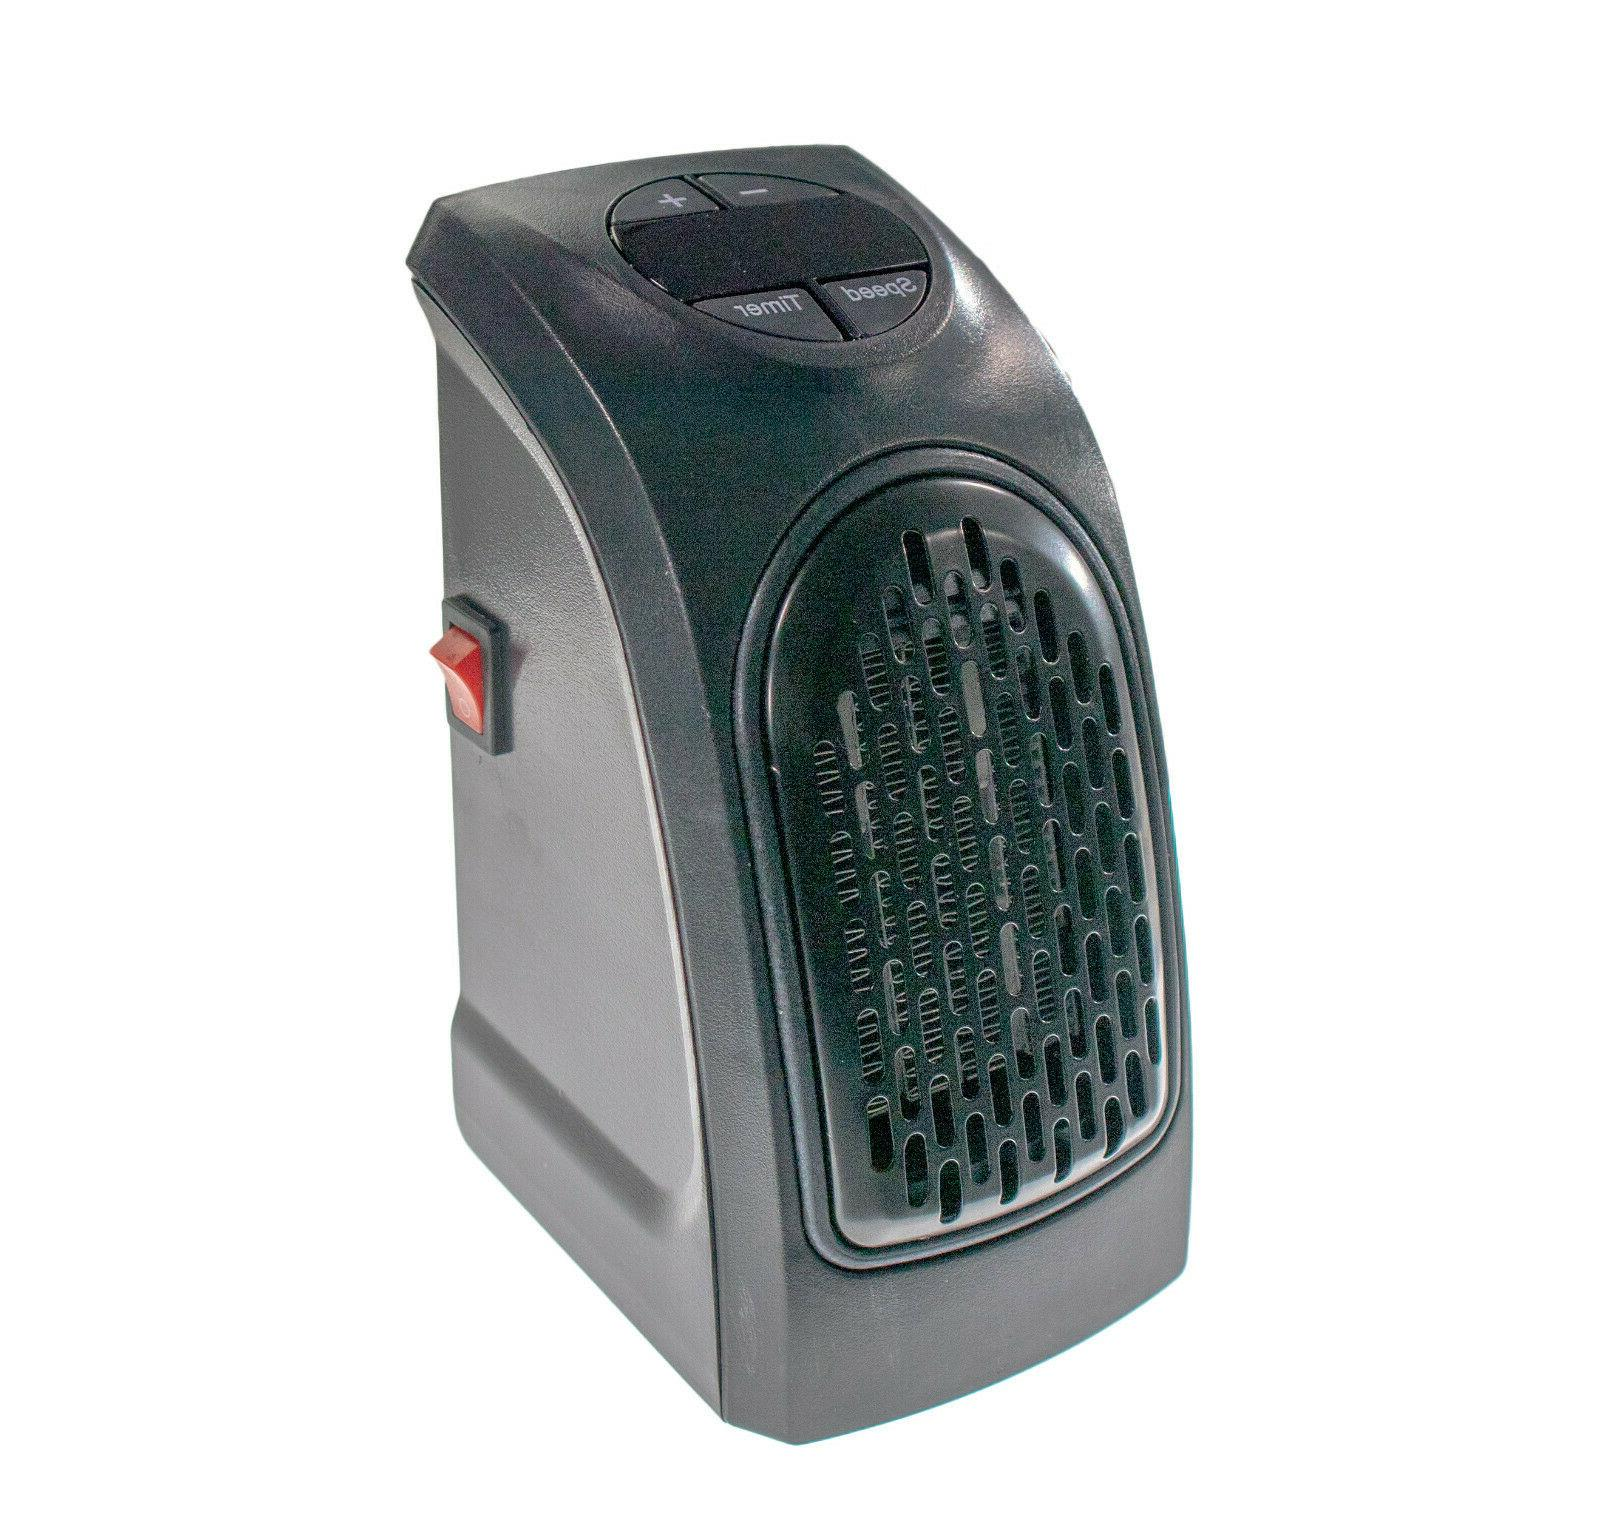 Portable Ceramic Mini Wall Outlet Space Heater 400W Digital